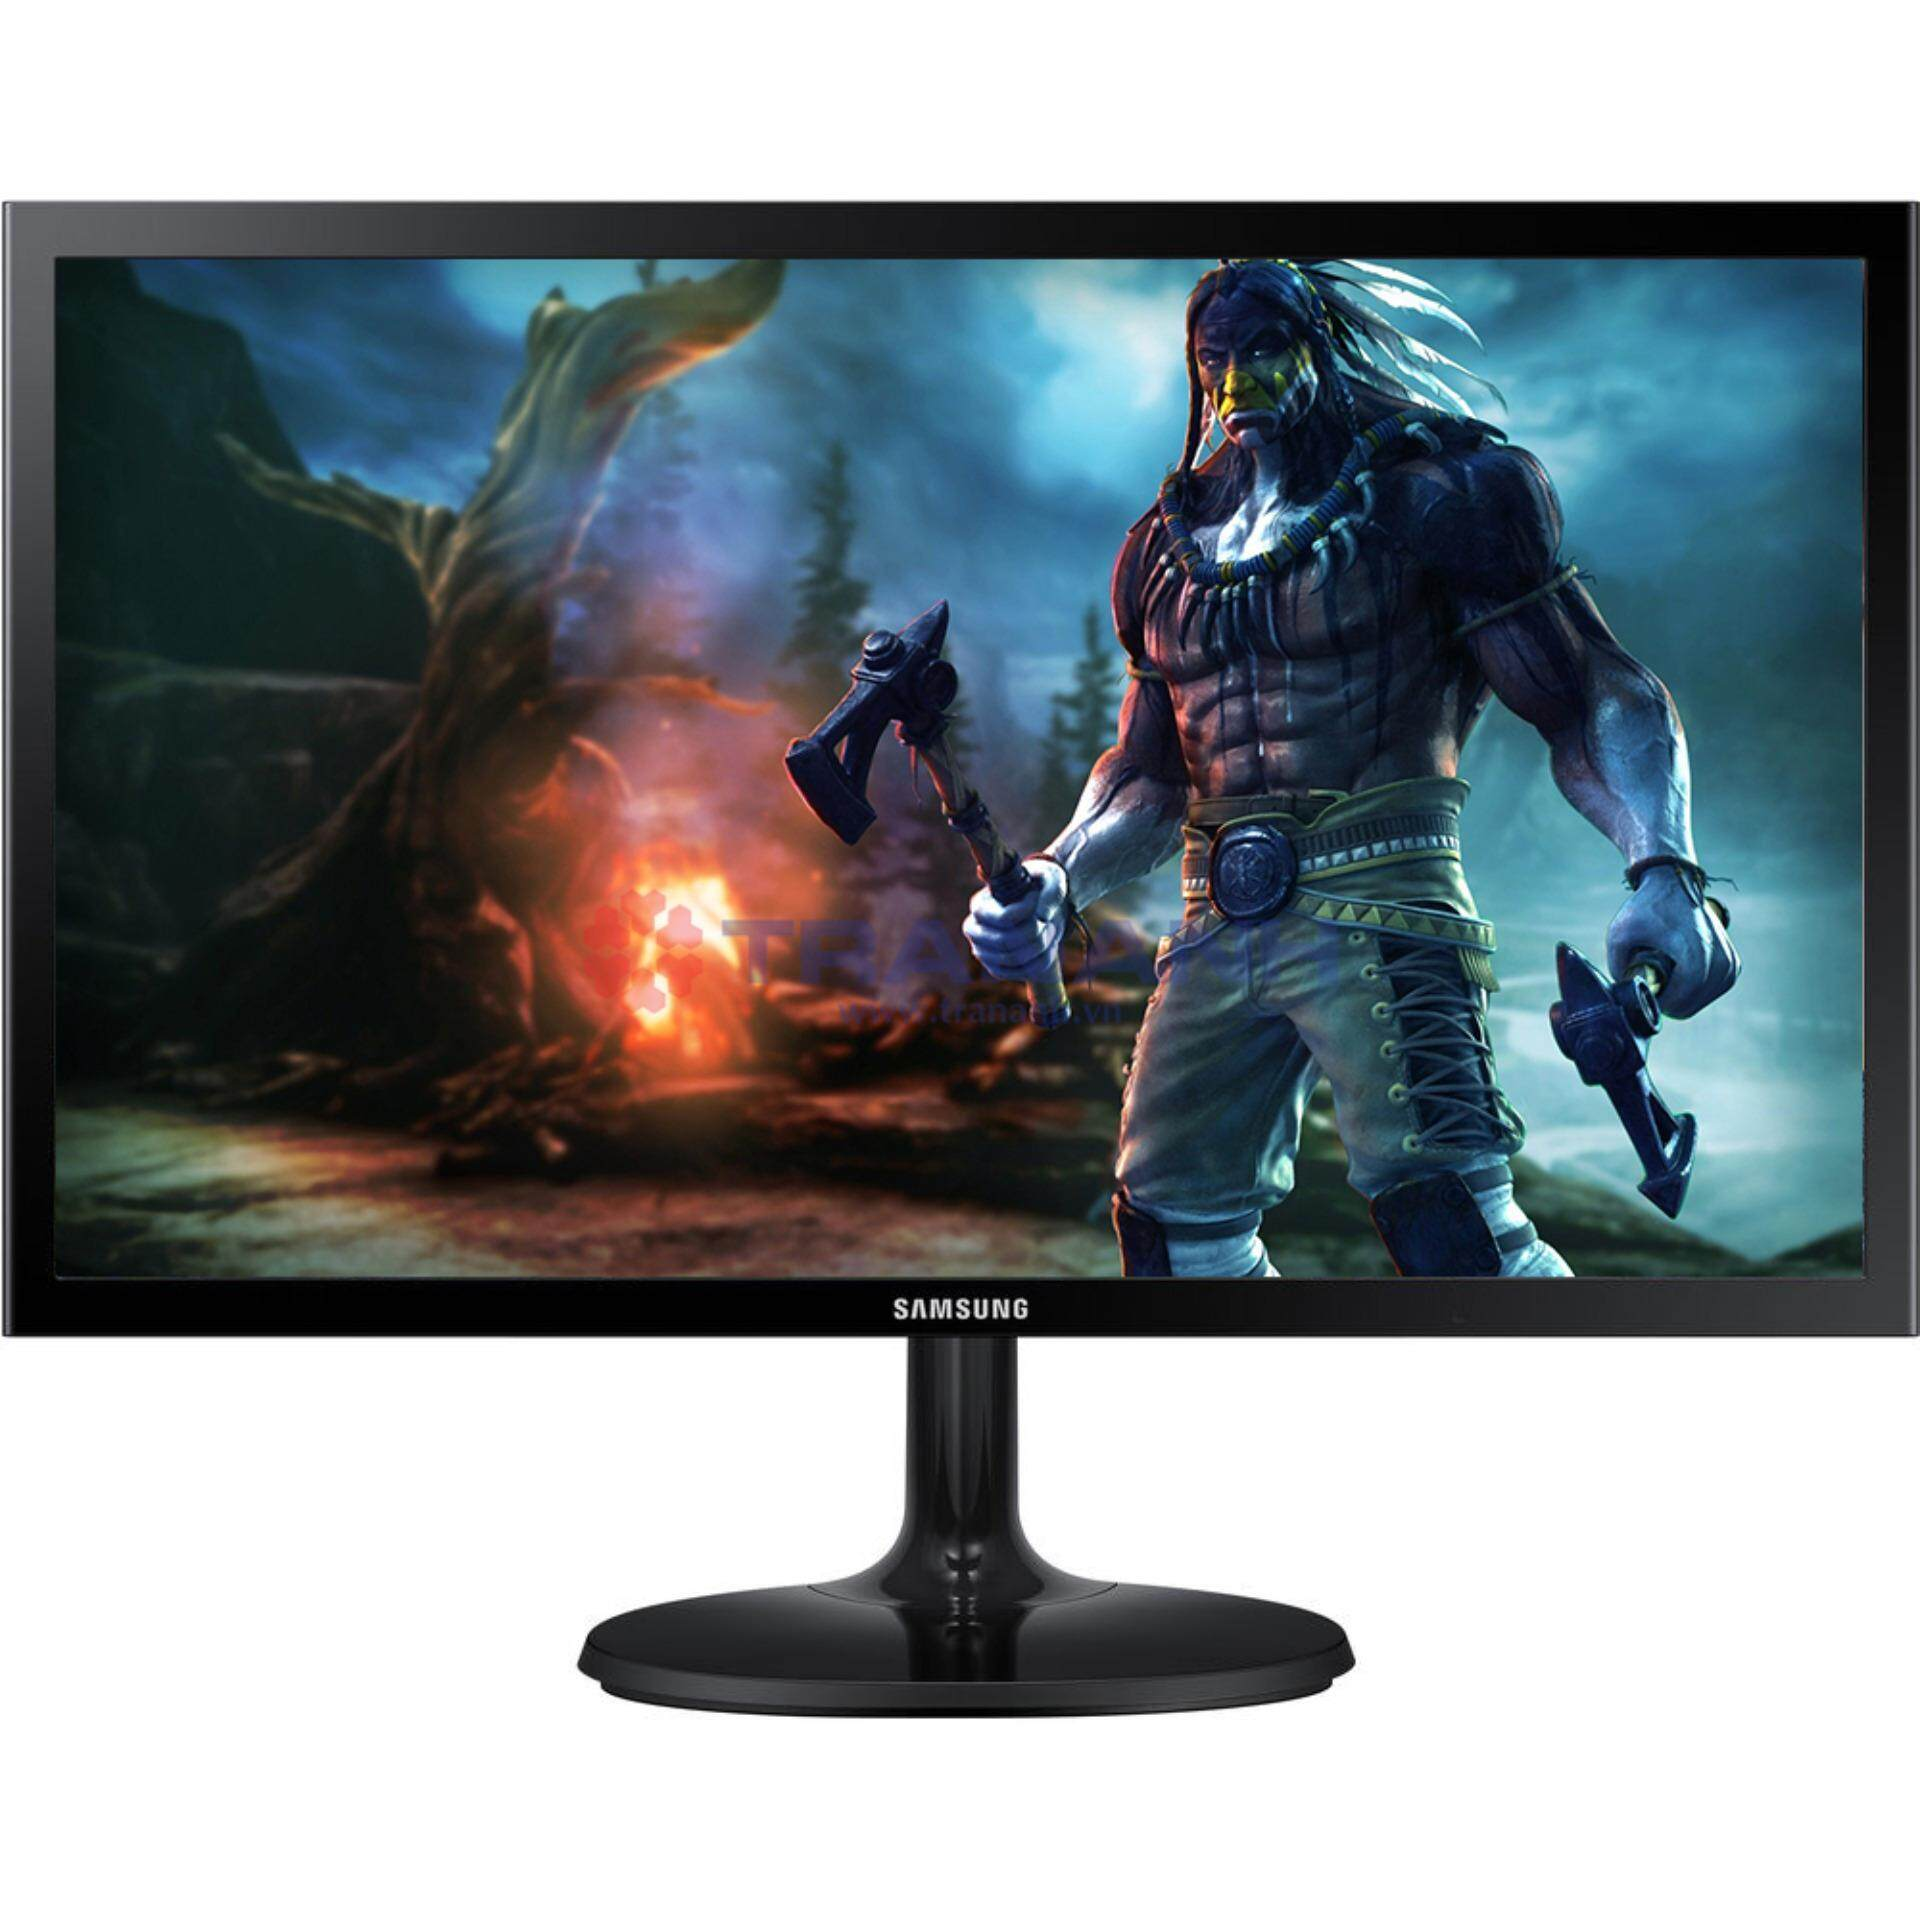 SAMSUNG S22F355FHE 22 FULL HD LED MONITOR WITH SUPER SLIM DESIGN - LS22F355FHEXXM Malaysia